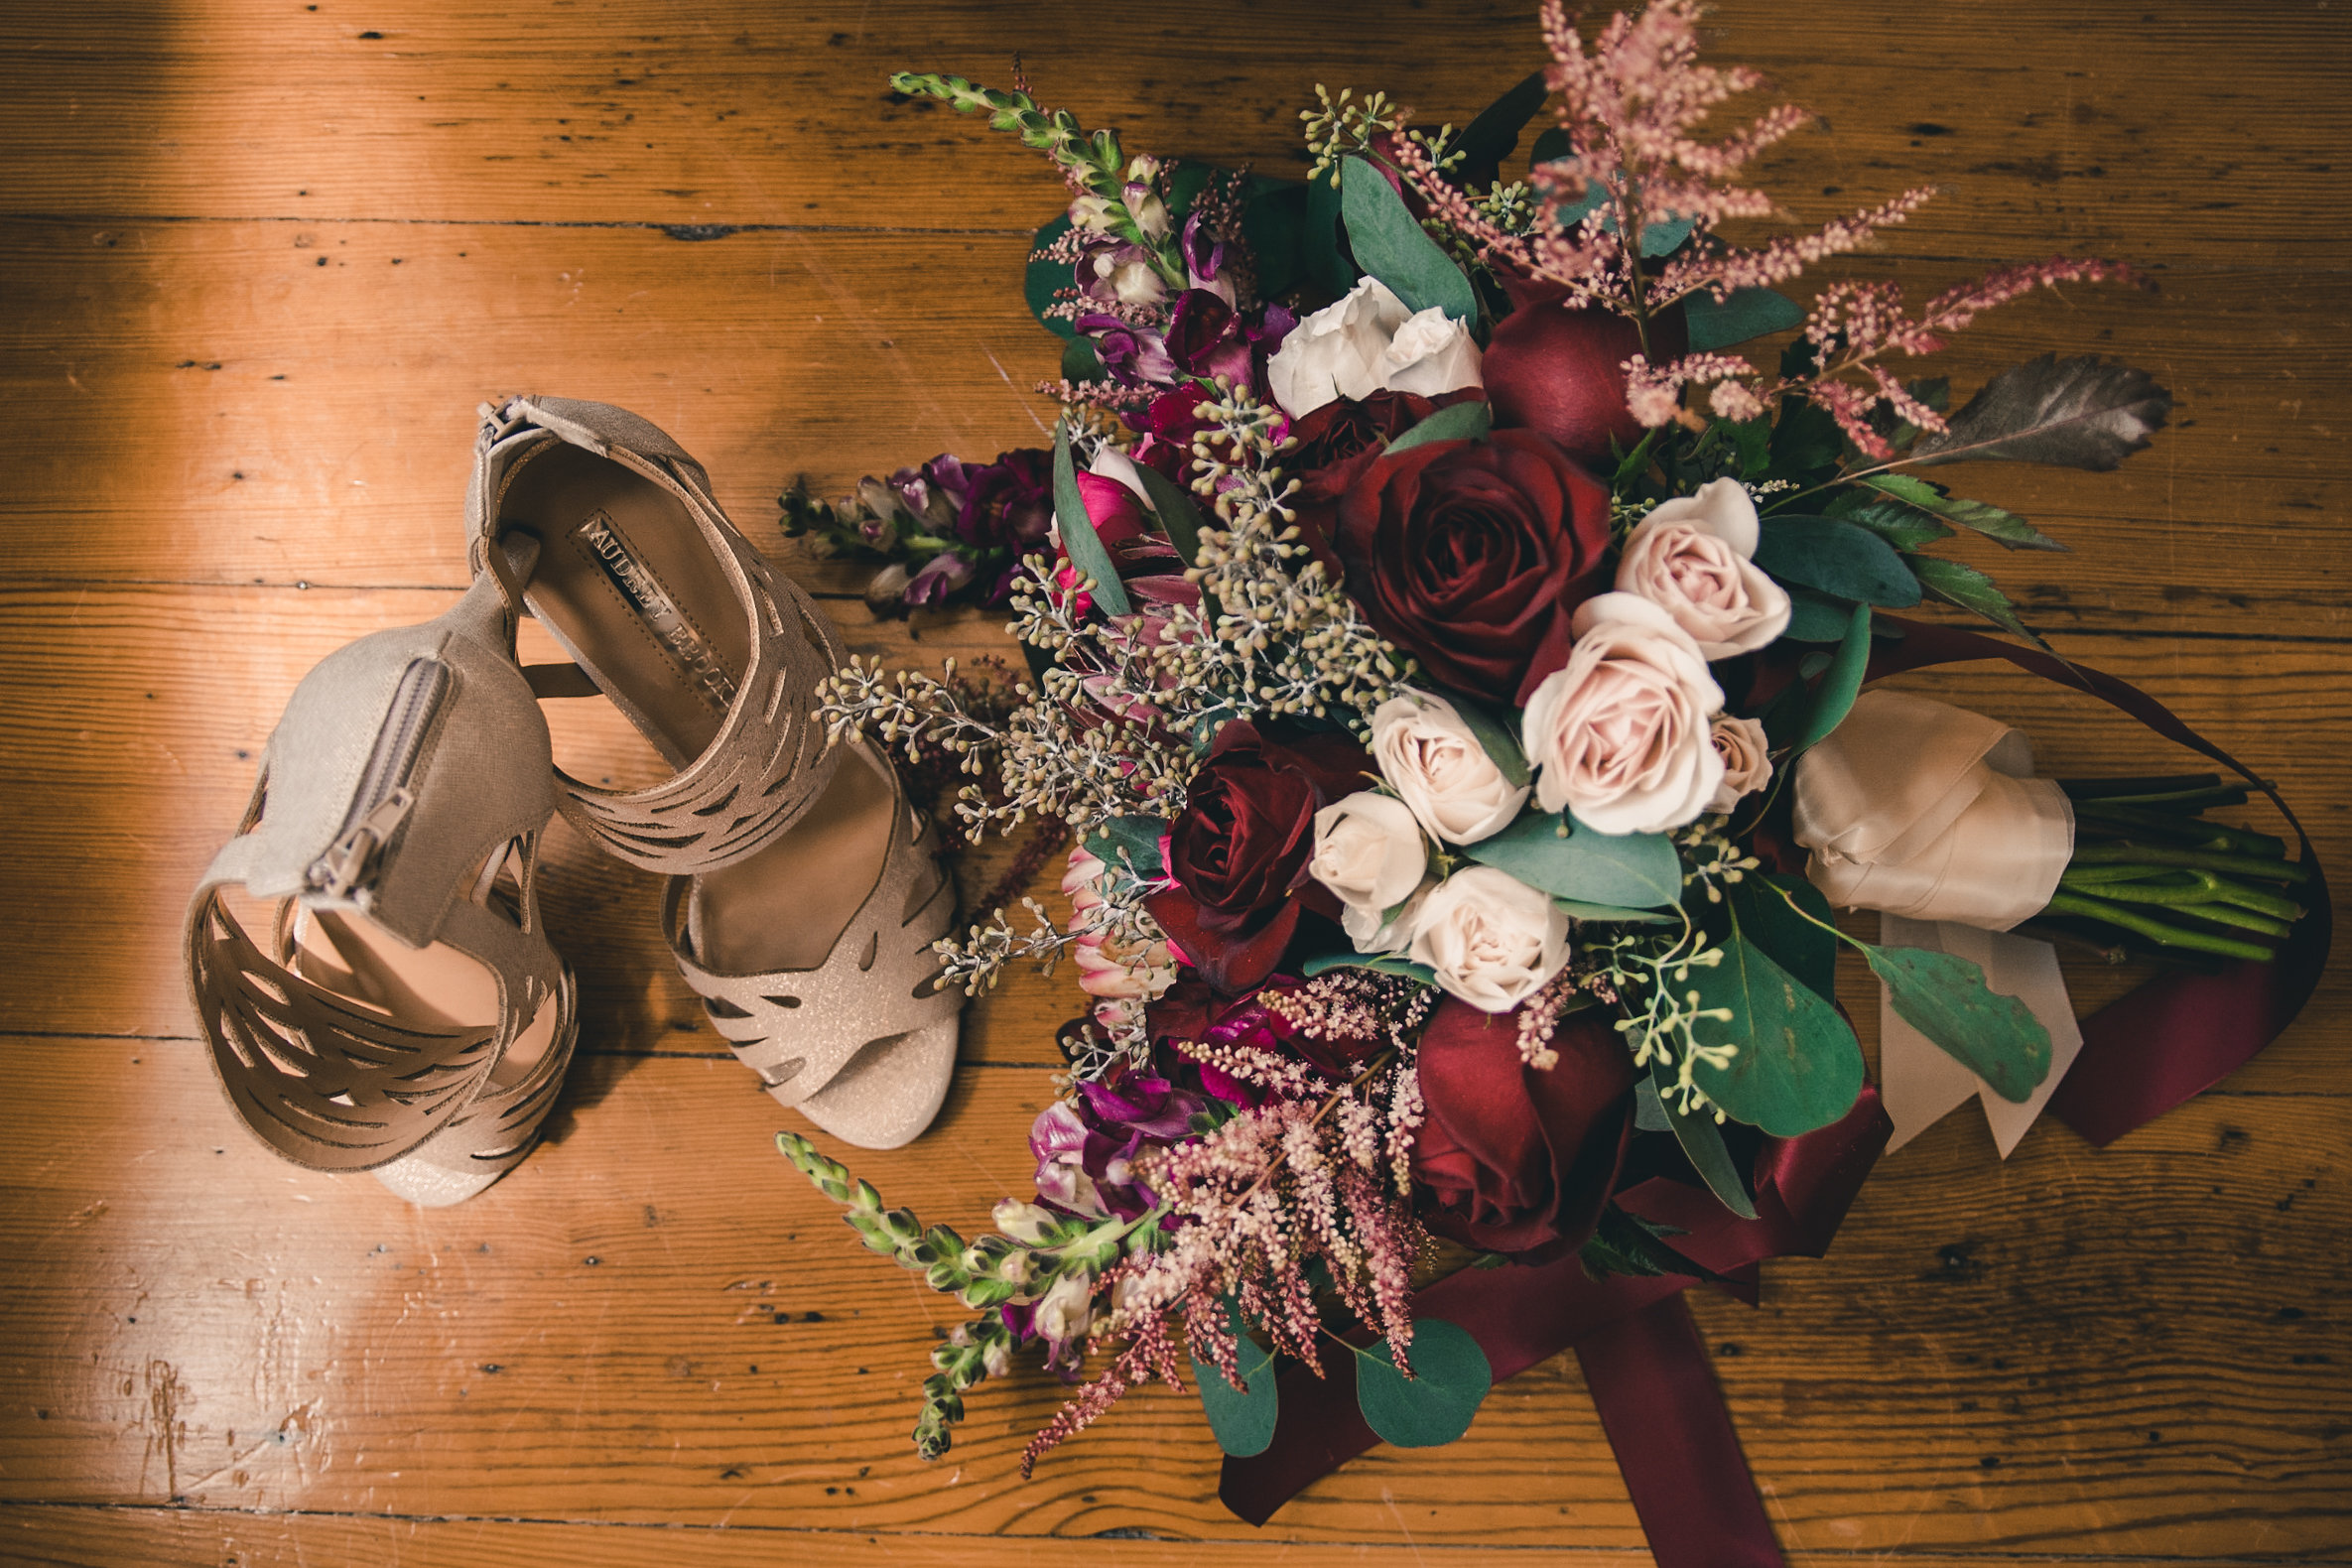 Bride's shoes and flowers seen from above